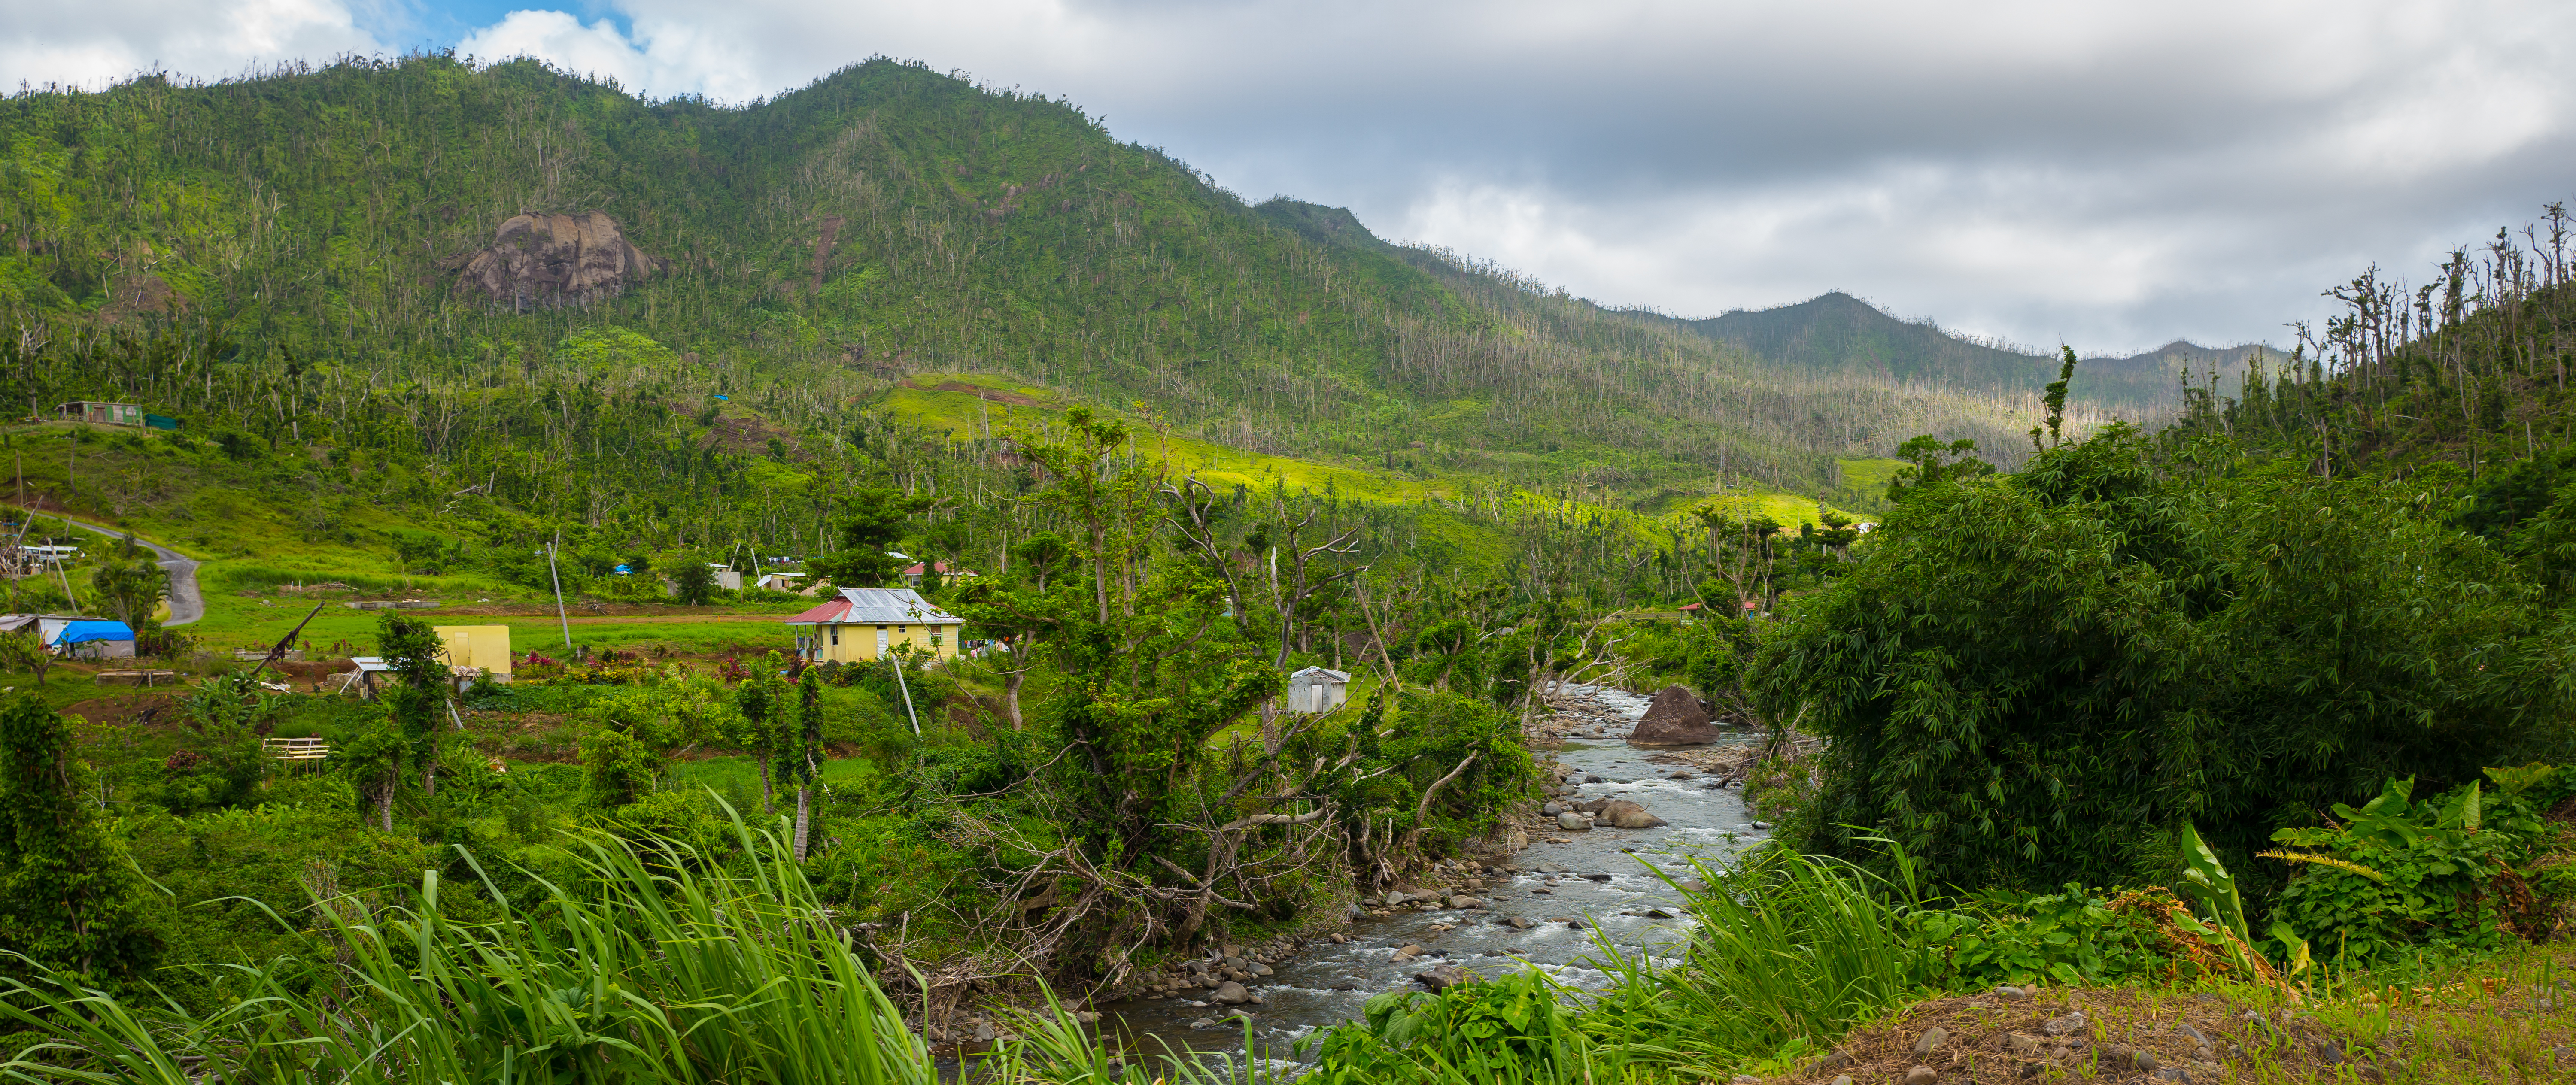 The Imperial Road climbs past lowland farming communities along the Pagua River.